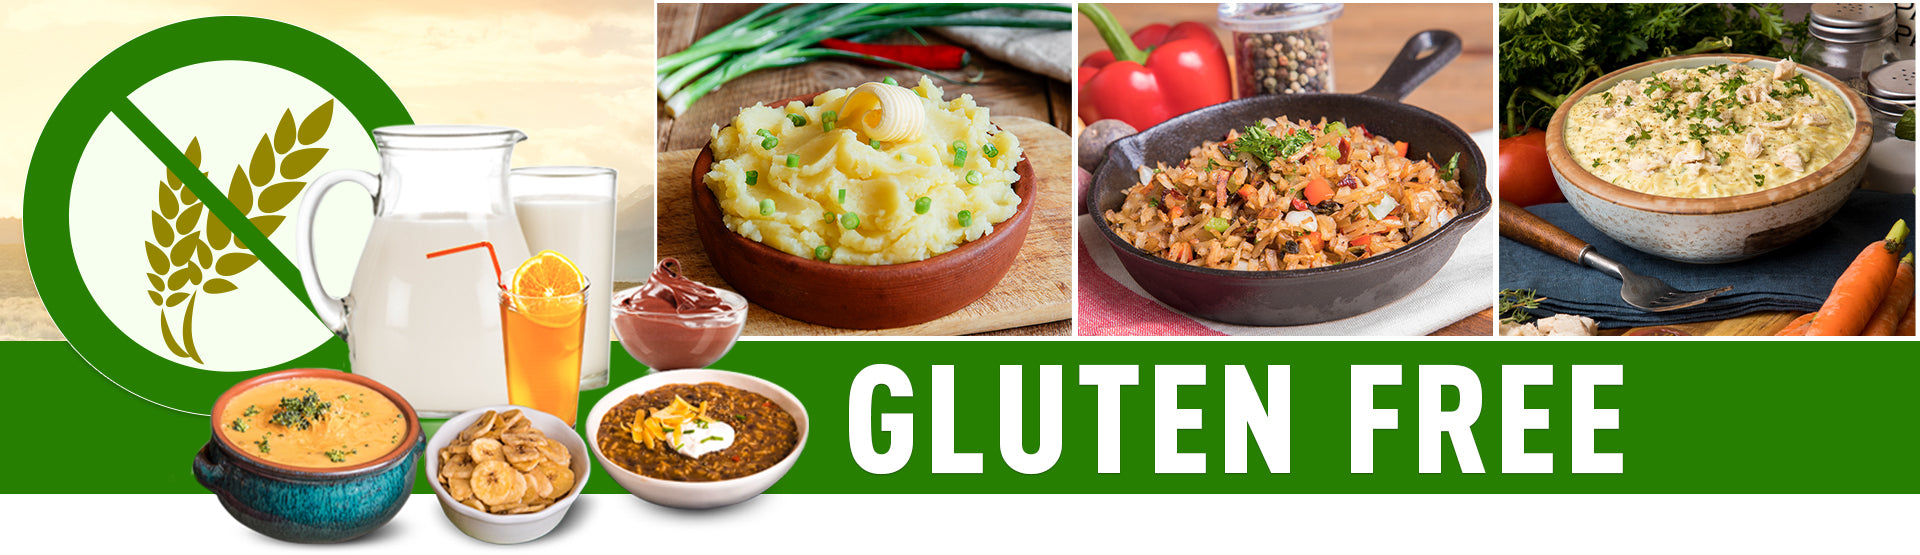 Gluten Free Emergency Food Storage - an assortment of gluten free emergency foods